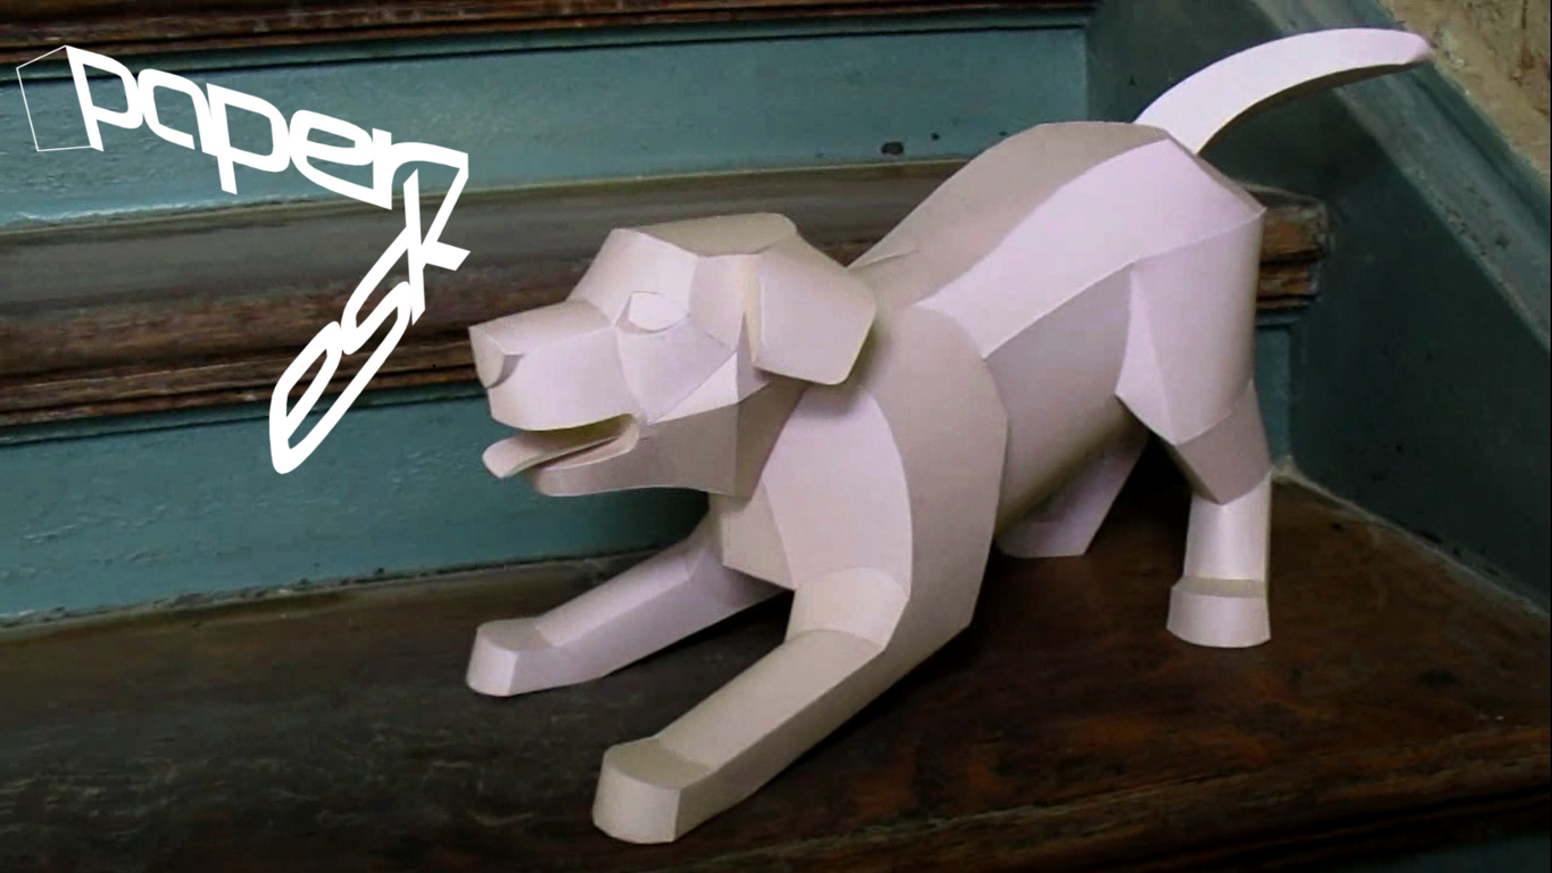 Build yourself fun and decorative paper models from templates.   Happy crafting!